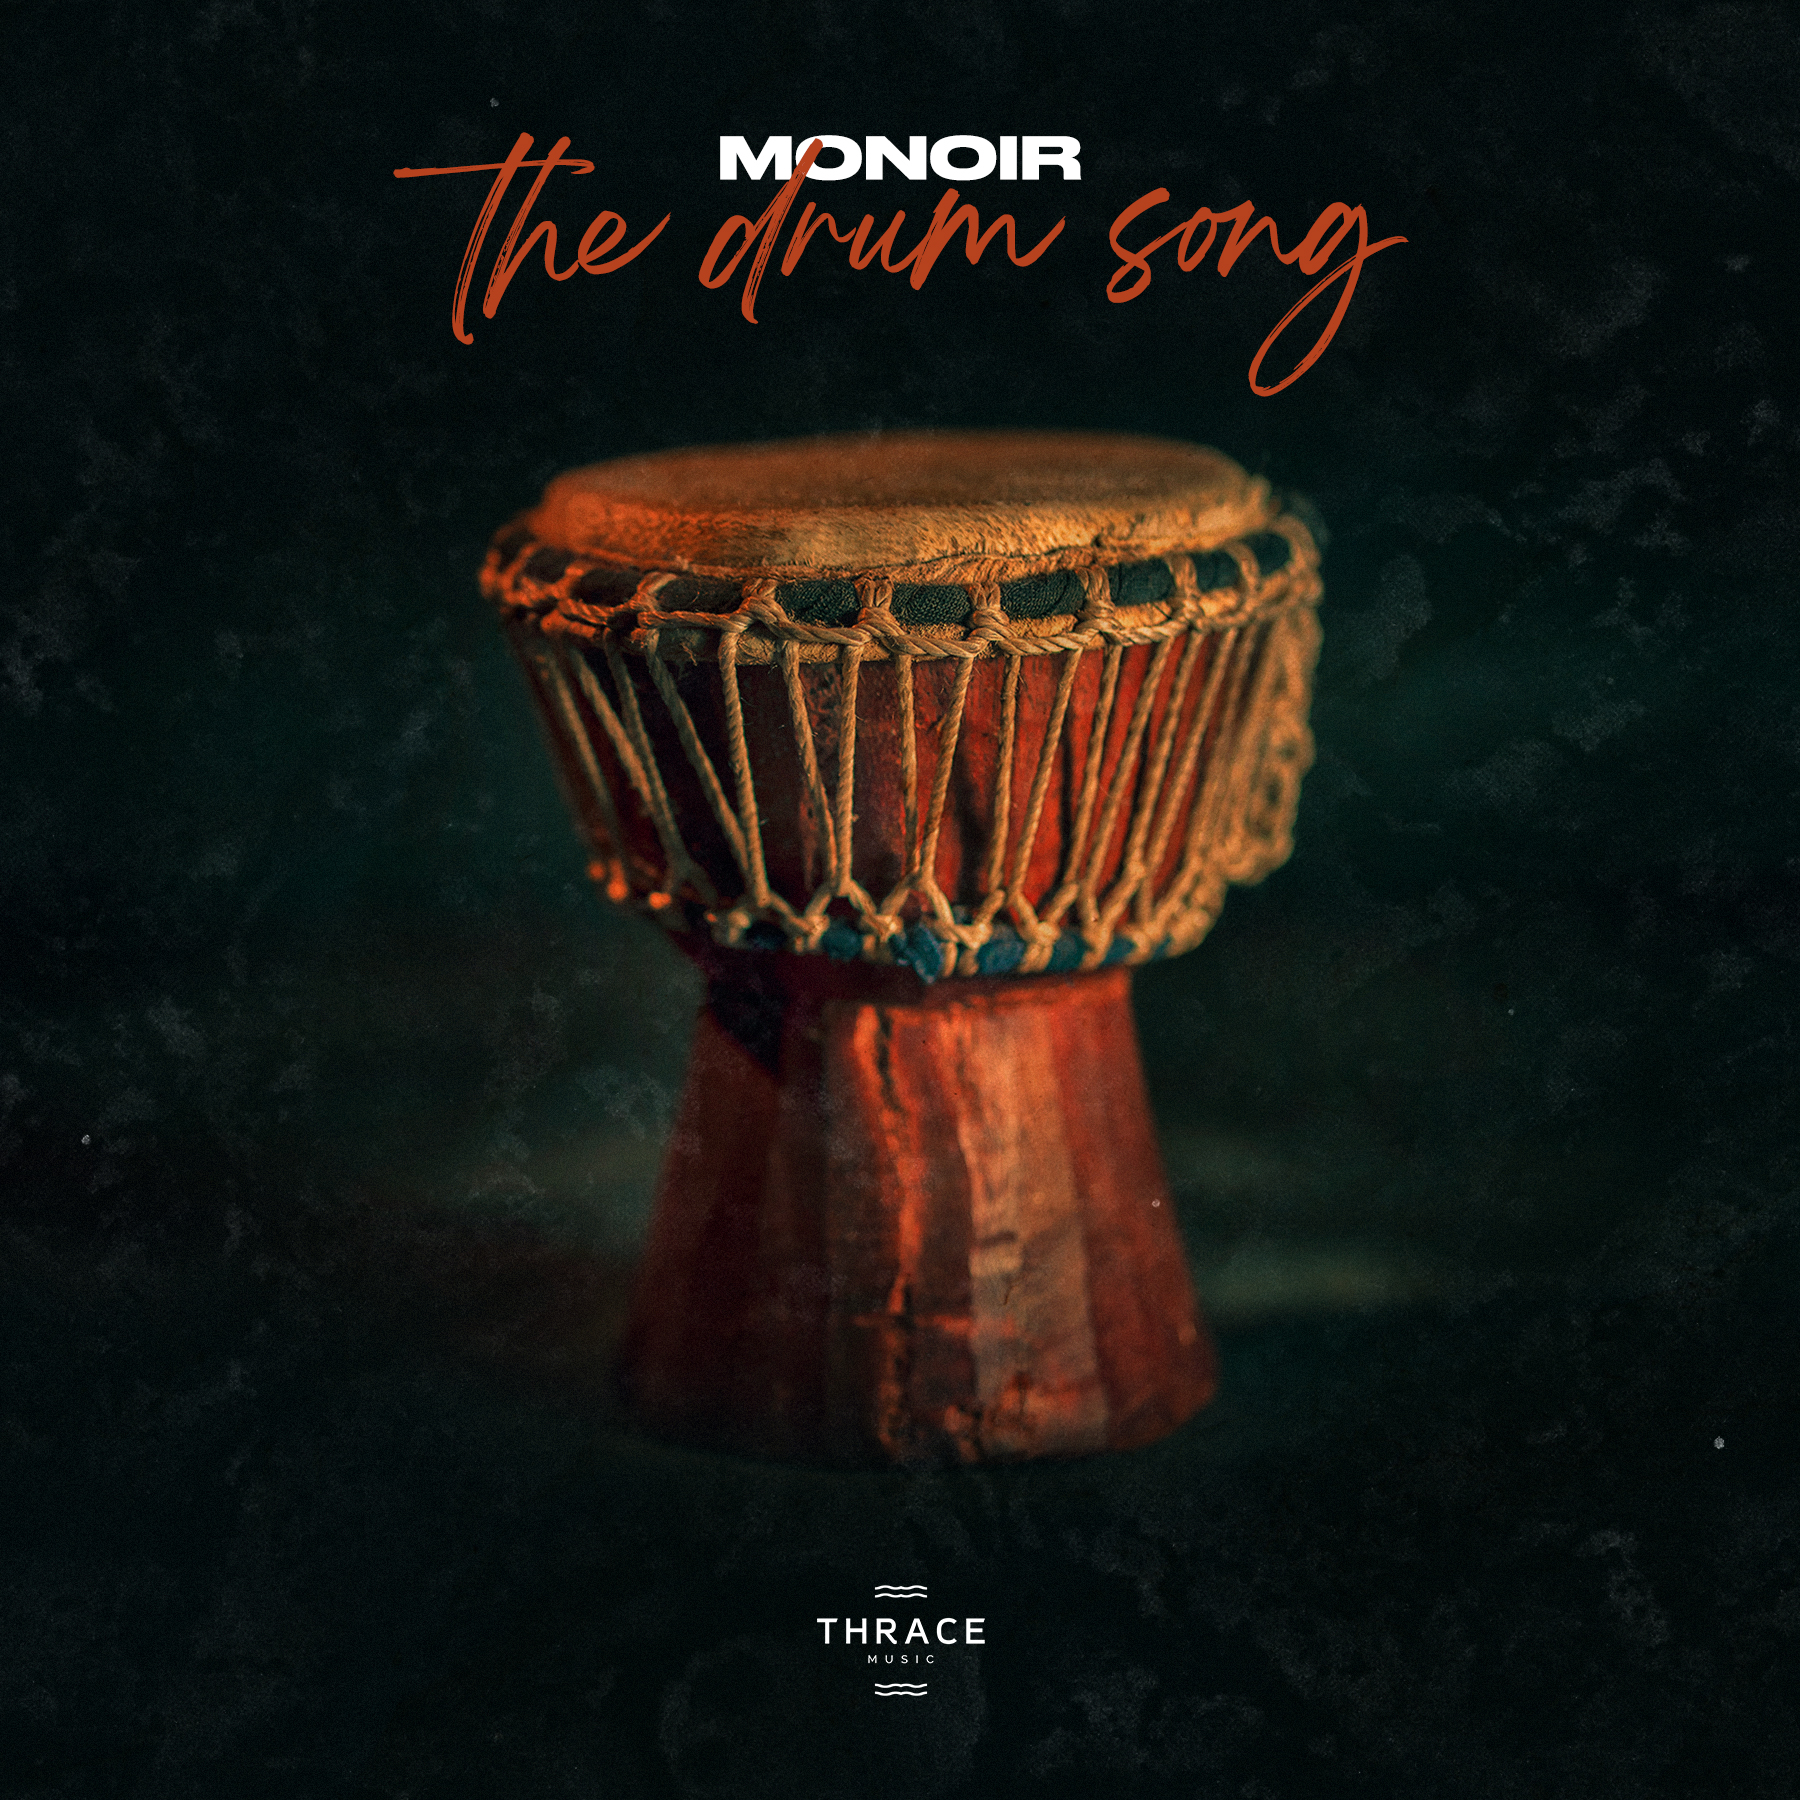 The Drum Song